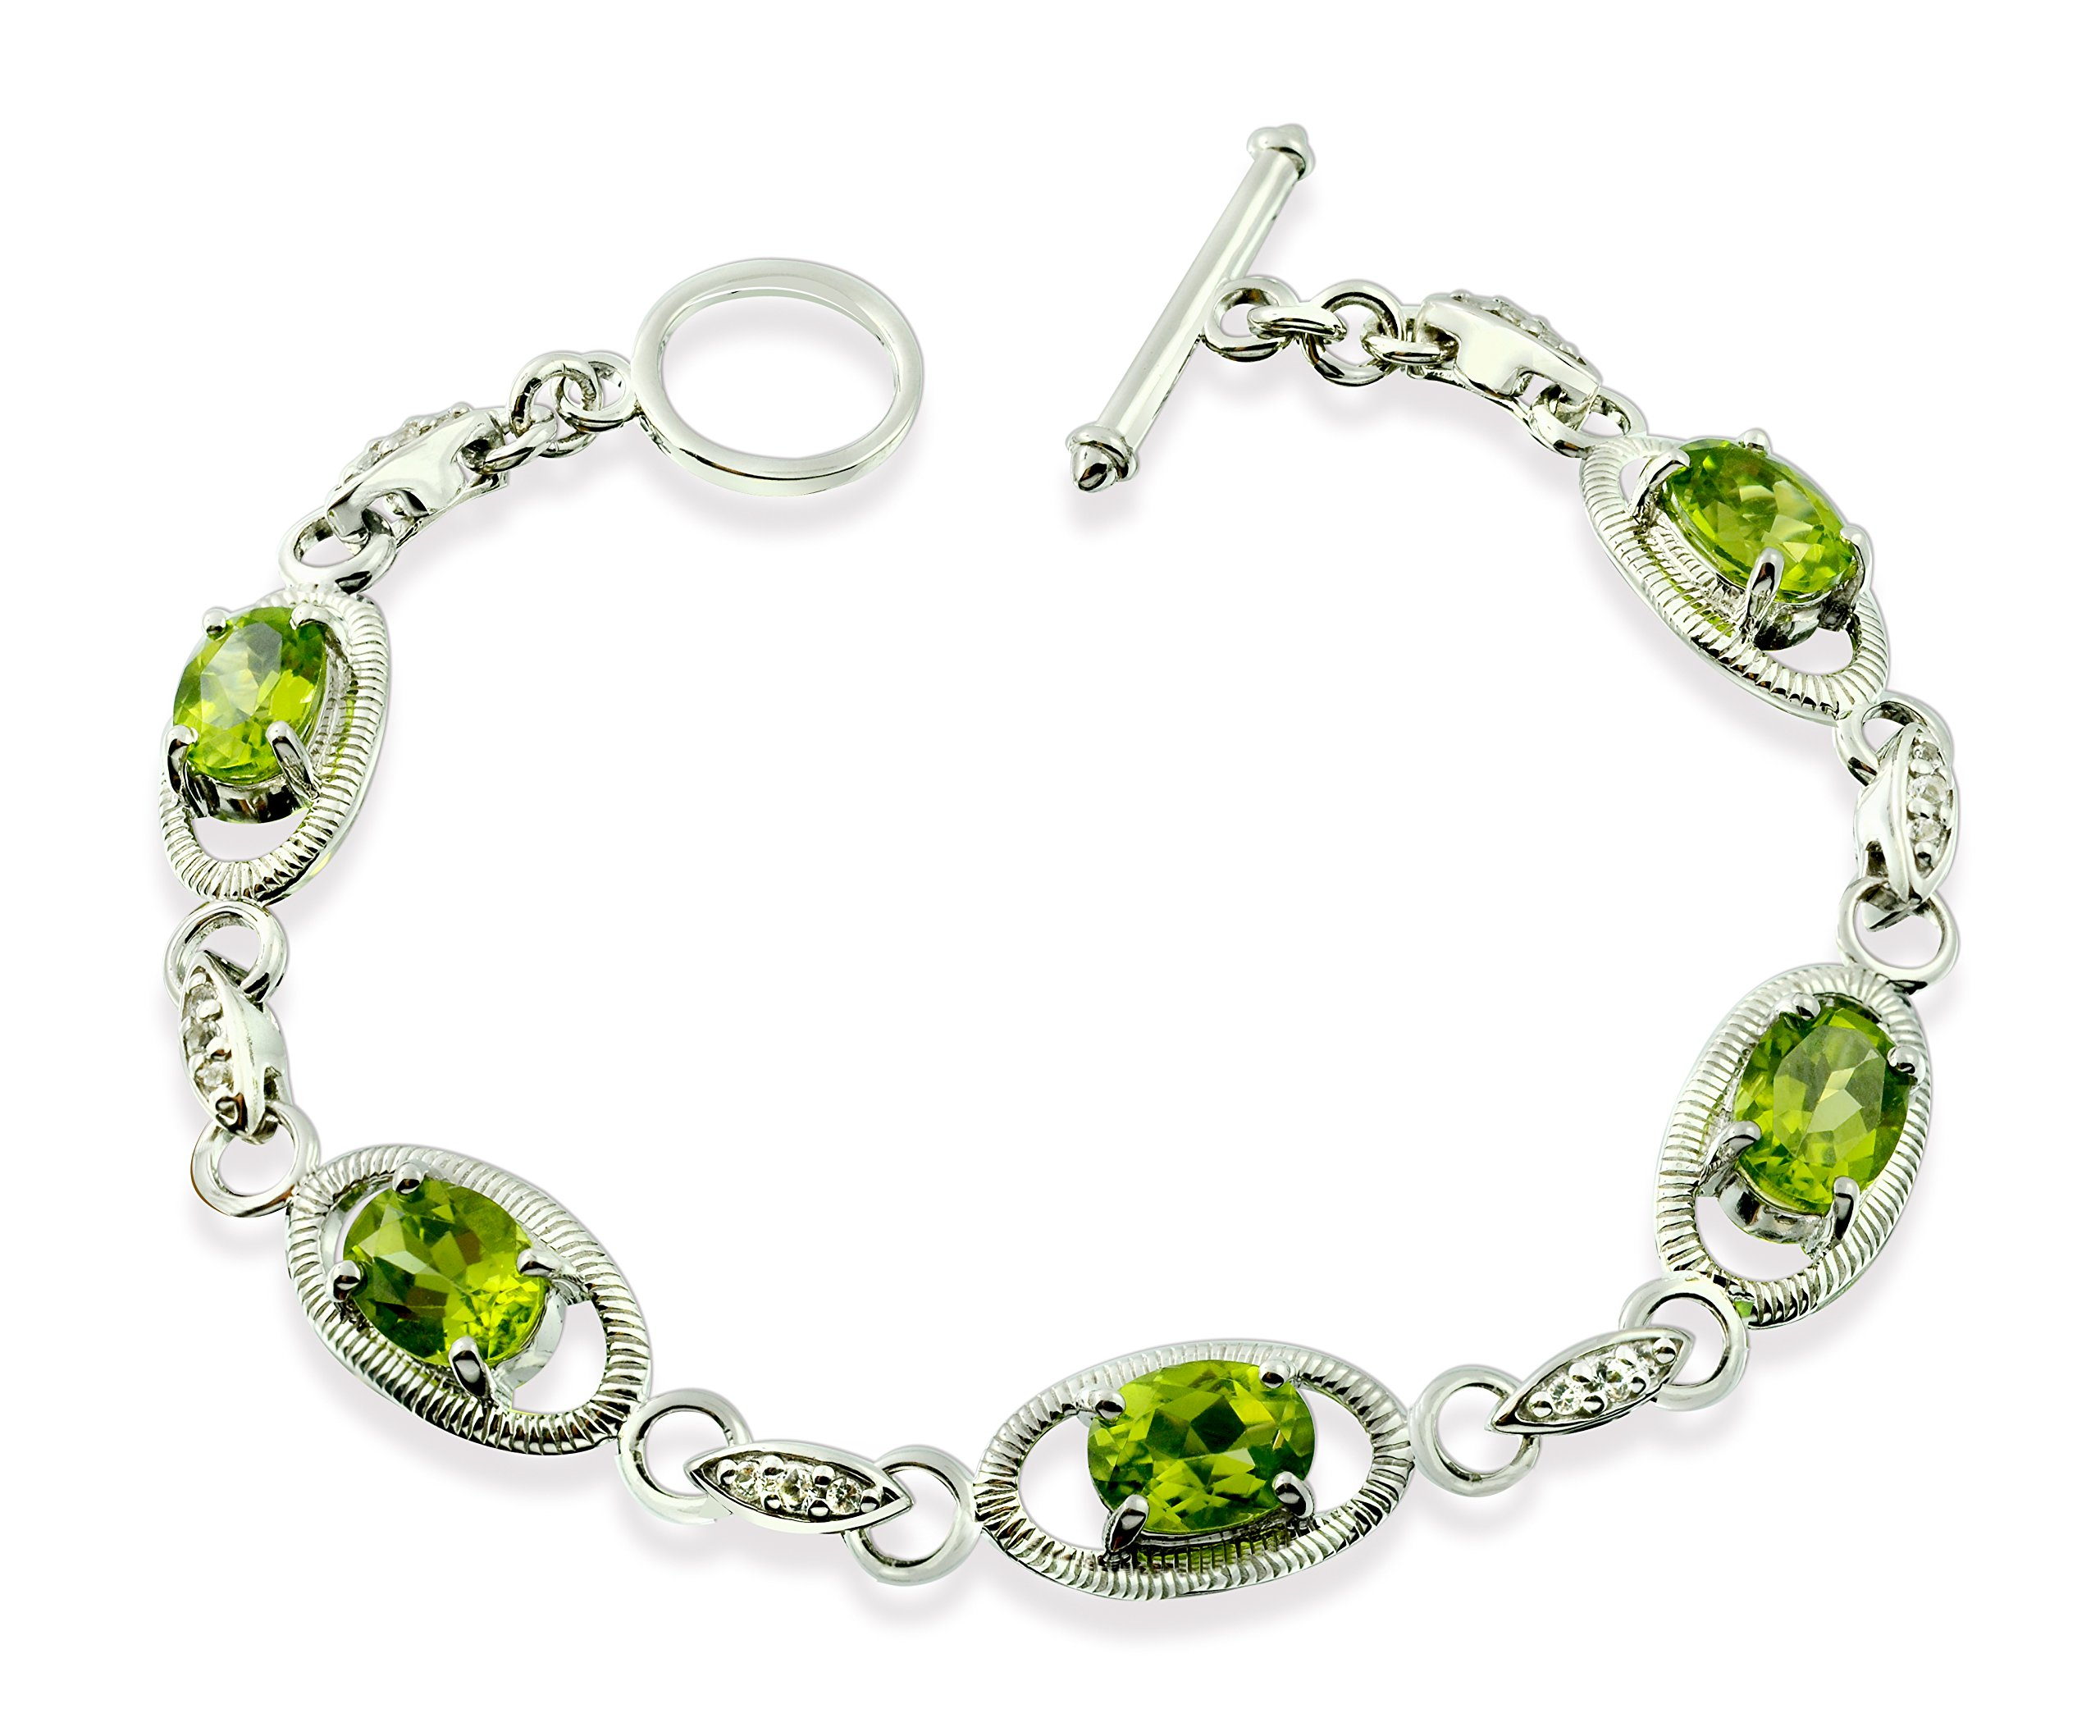 """Sterling Silver 925 TENNIS Bracelet GENUINE PERIDOT 7.5 Cts with RHODIUM-PLATED Finish, 7"""" Long (peridot)"""